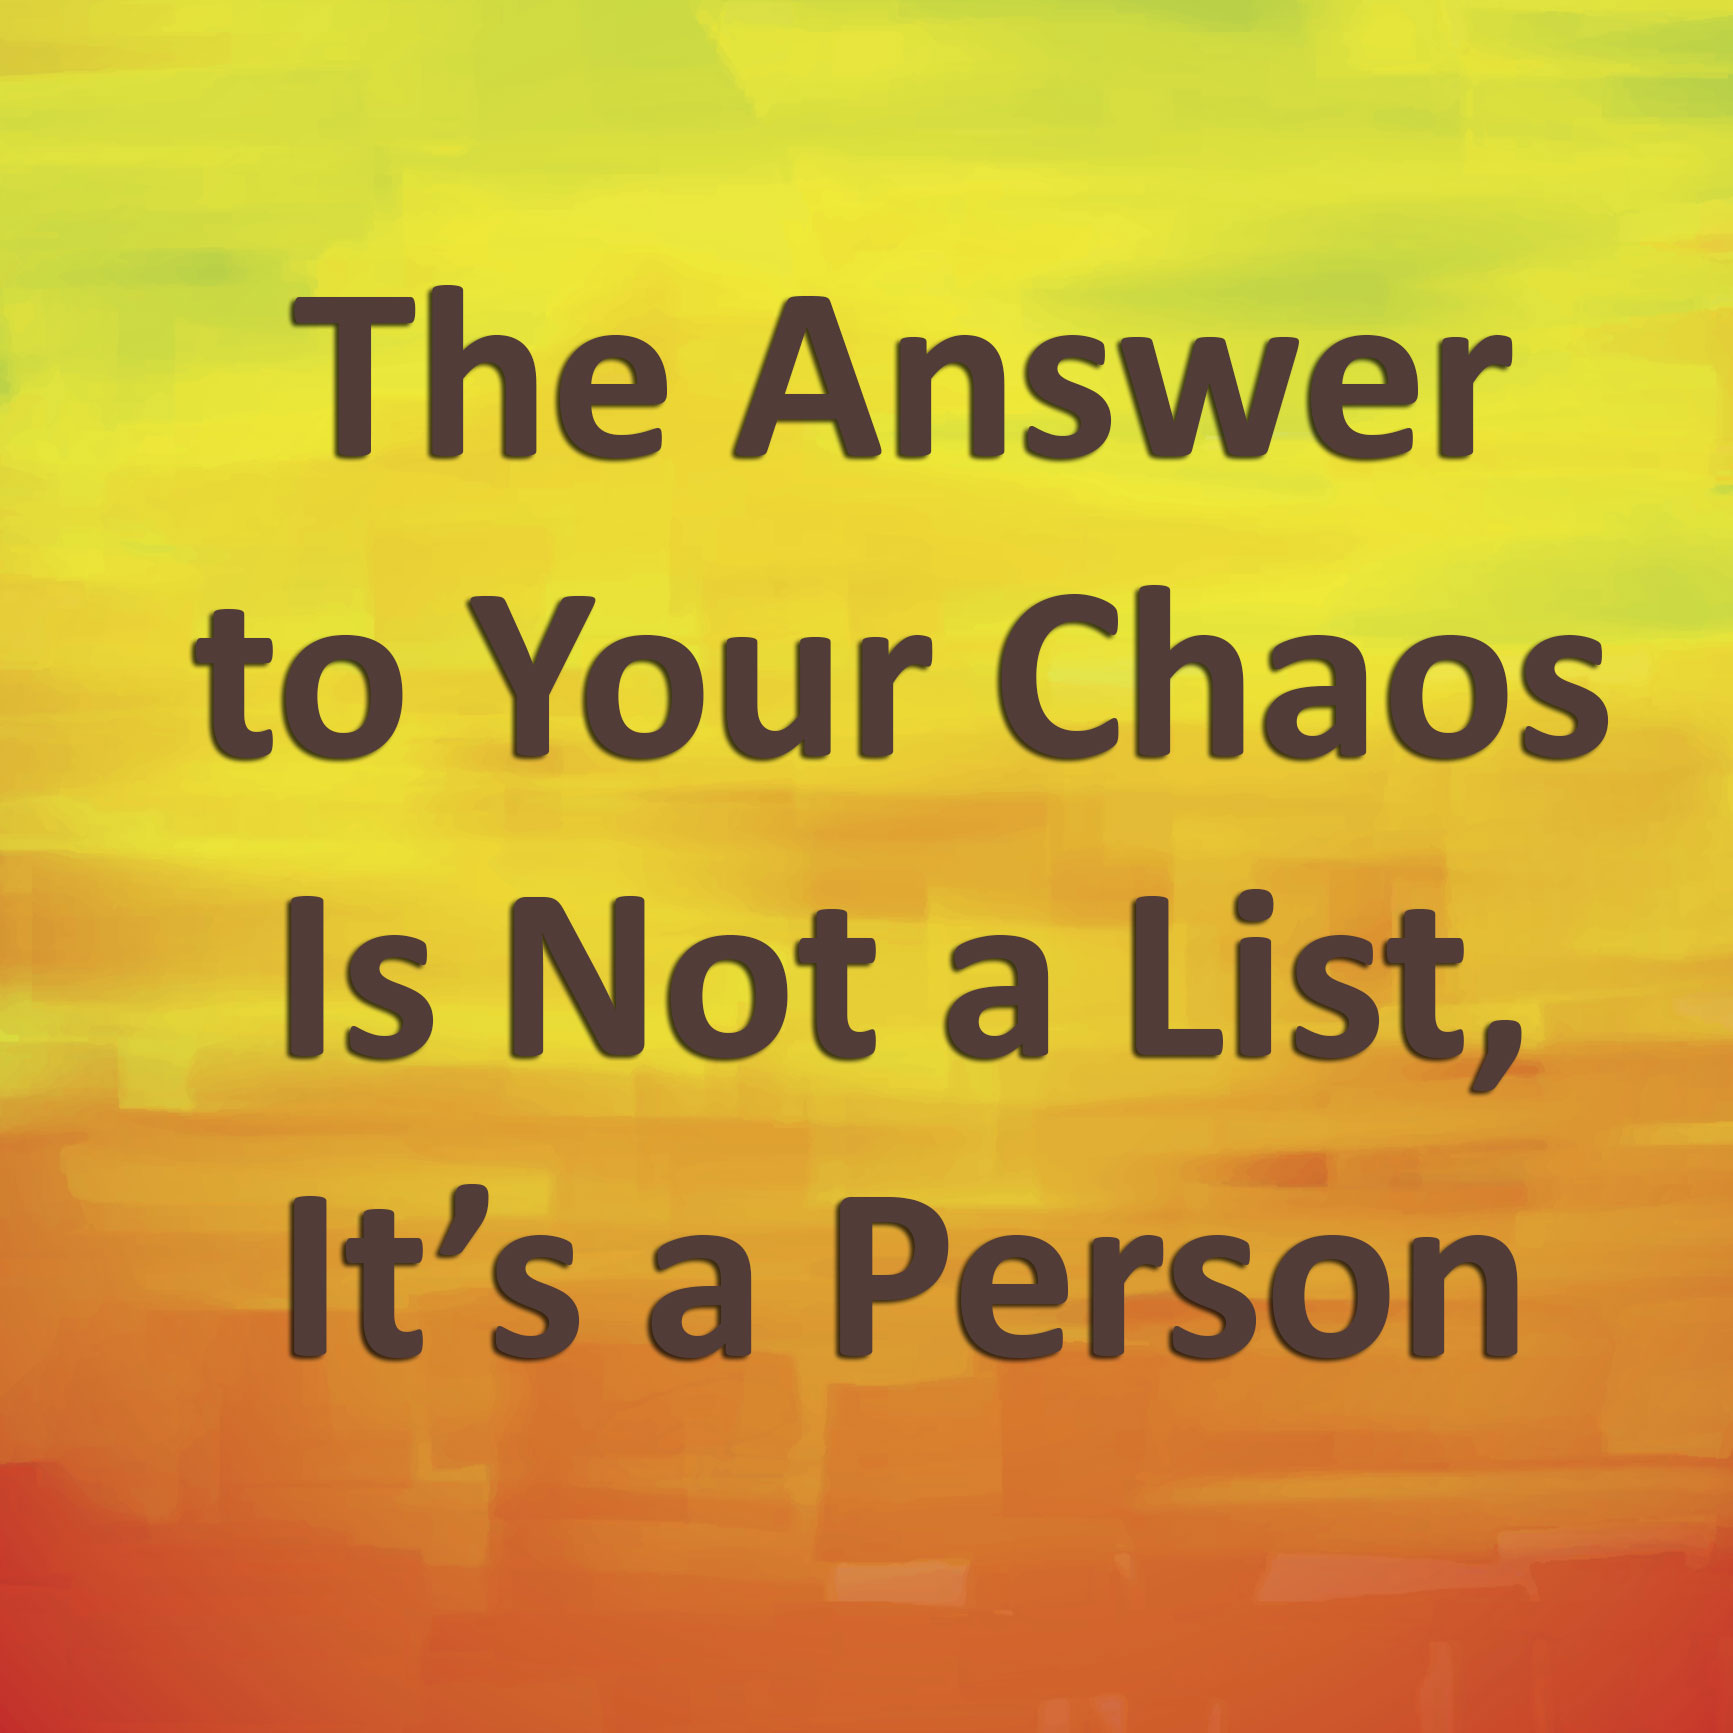 The Answer to Your Chaos Is Not a List, It's a Person